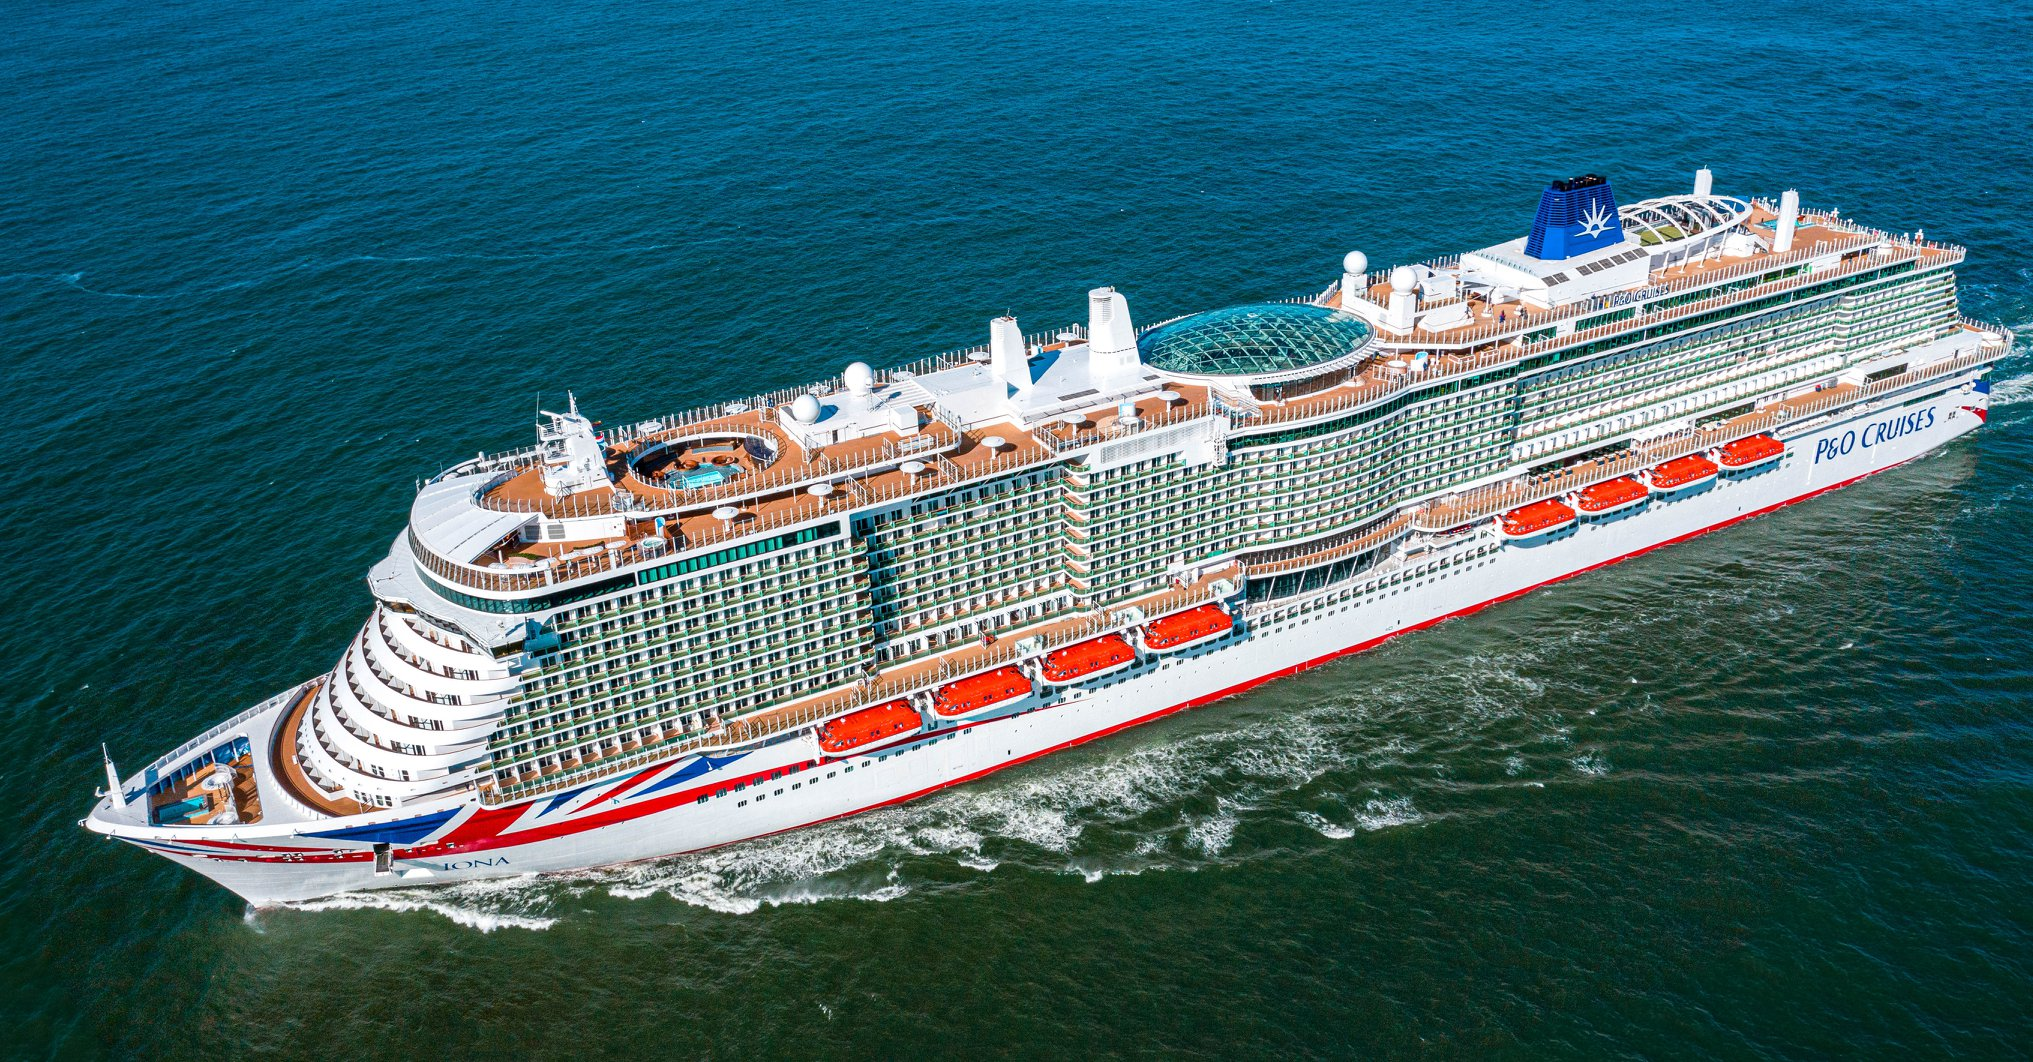 5 MOST POPULAR CRUISE VACATION TRIPS